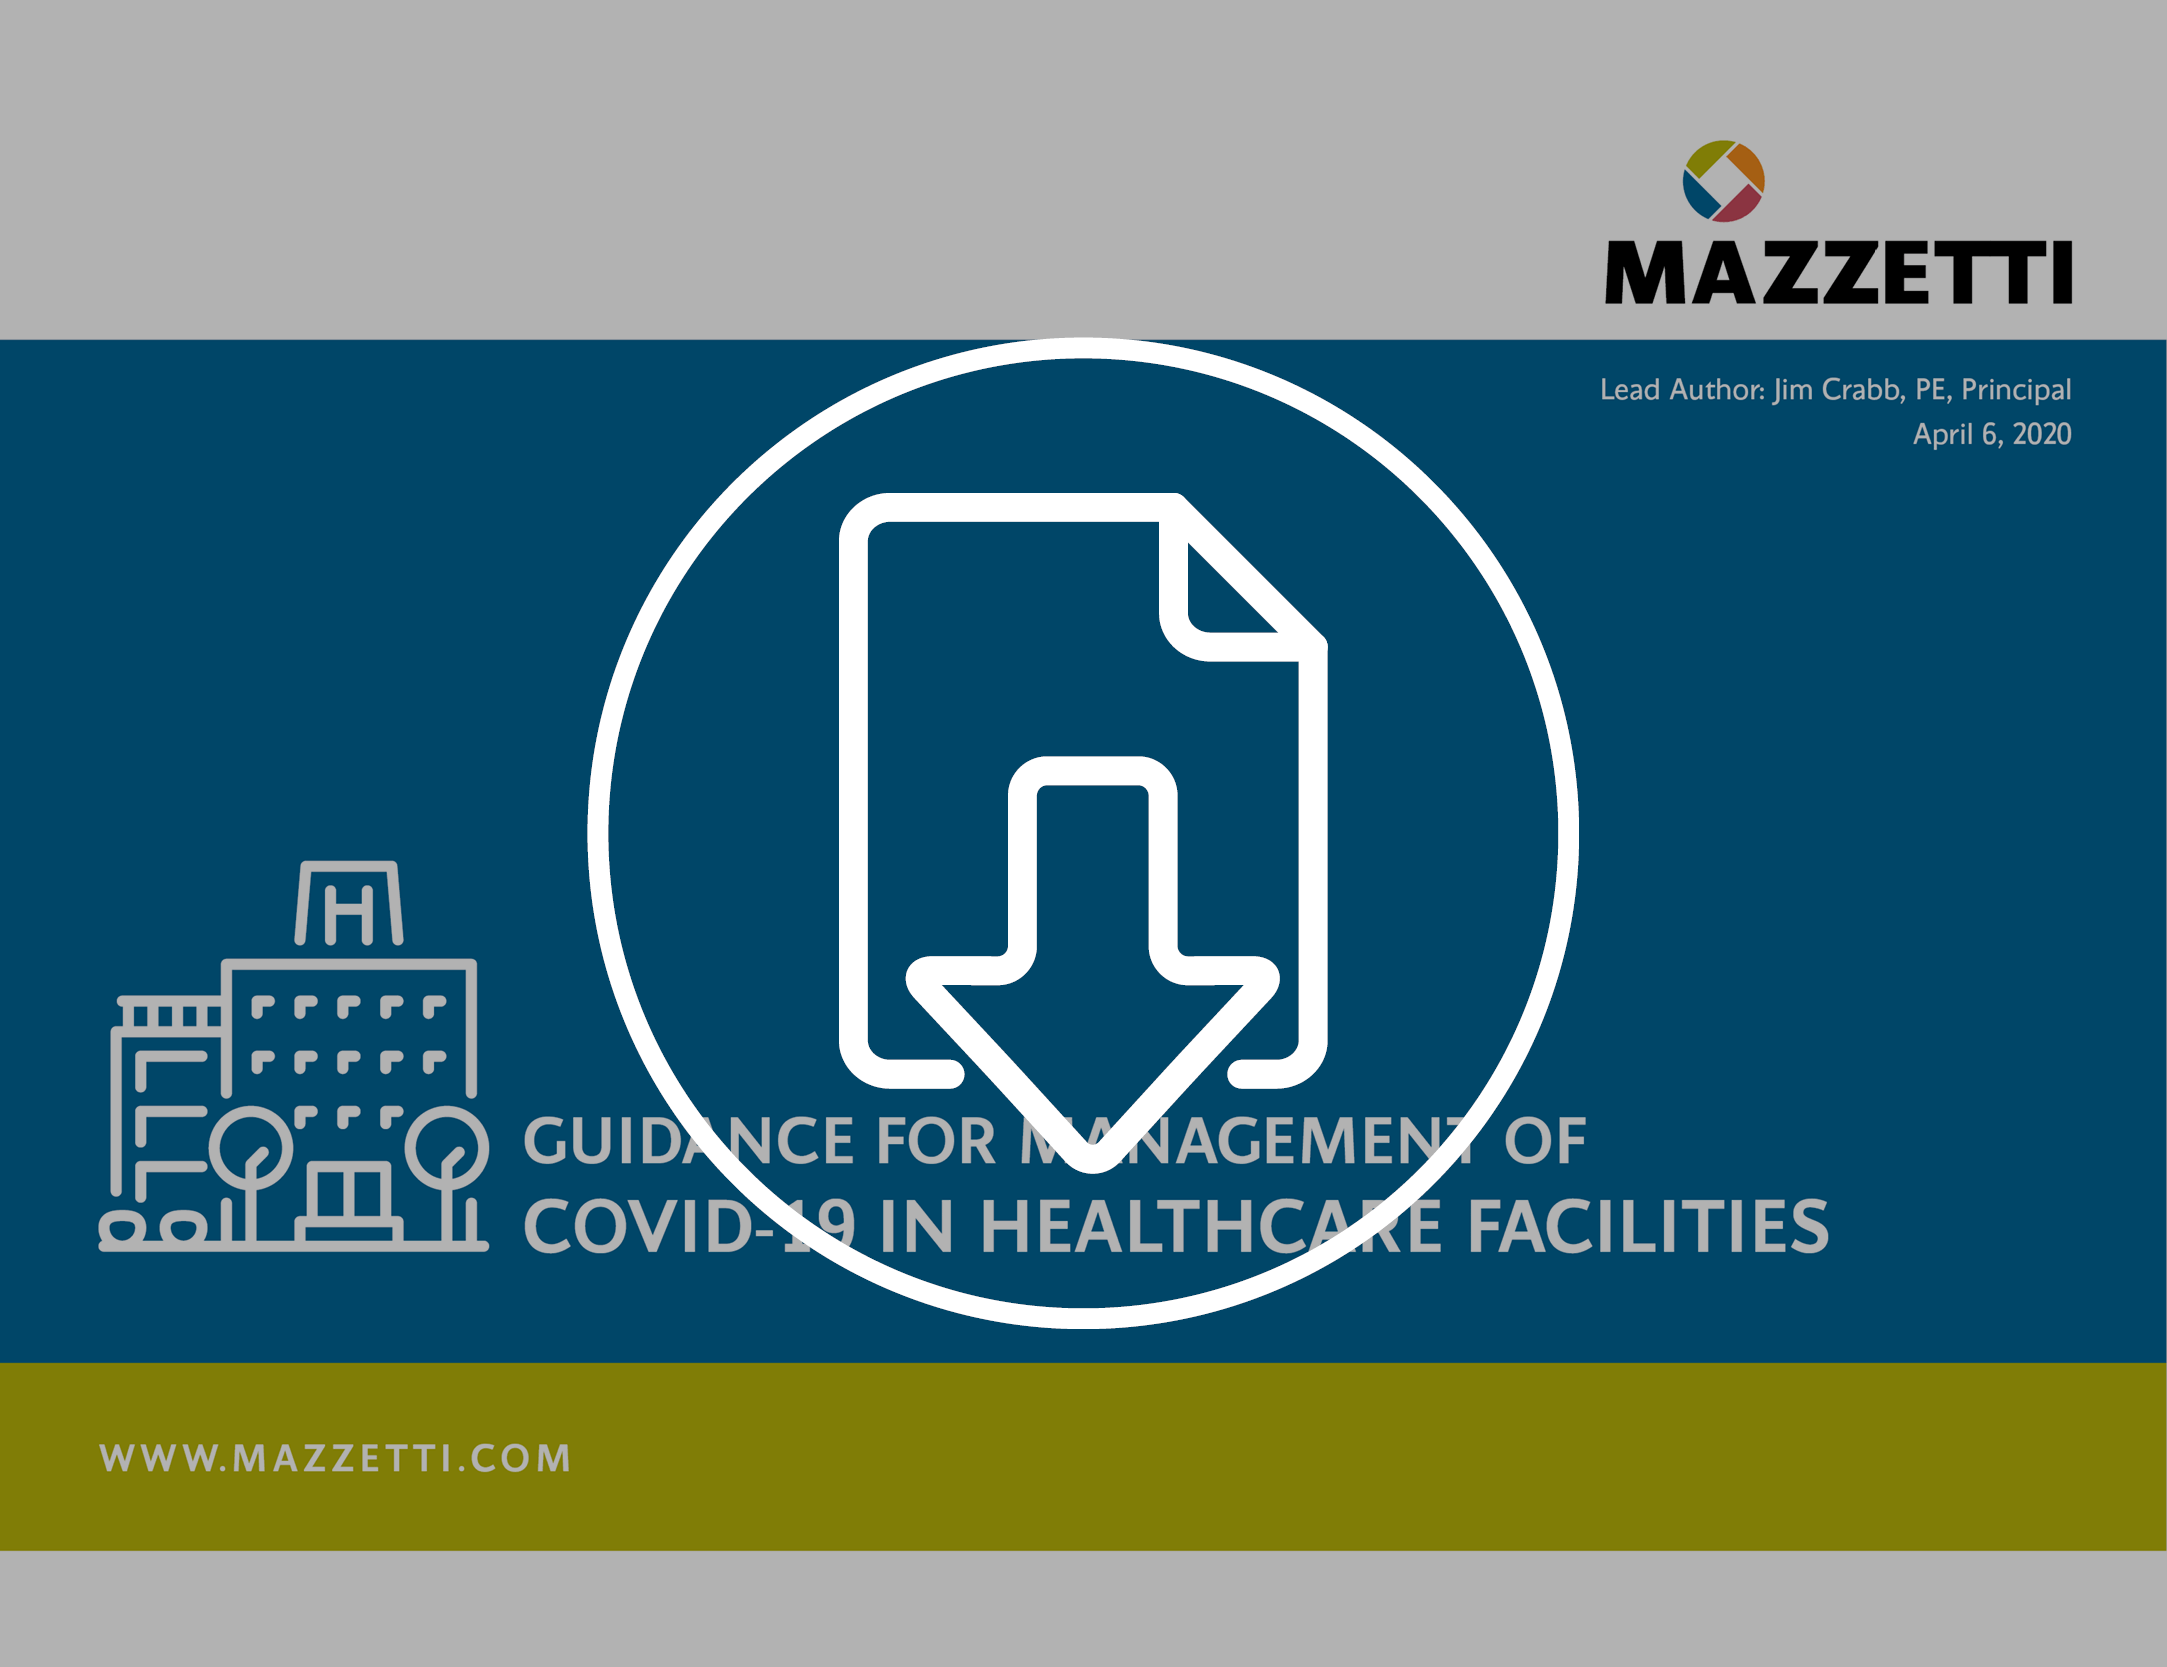 Guidance for Management of COVID-19 for Healthcare Facilities